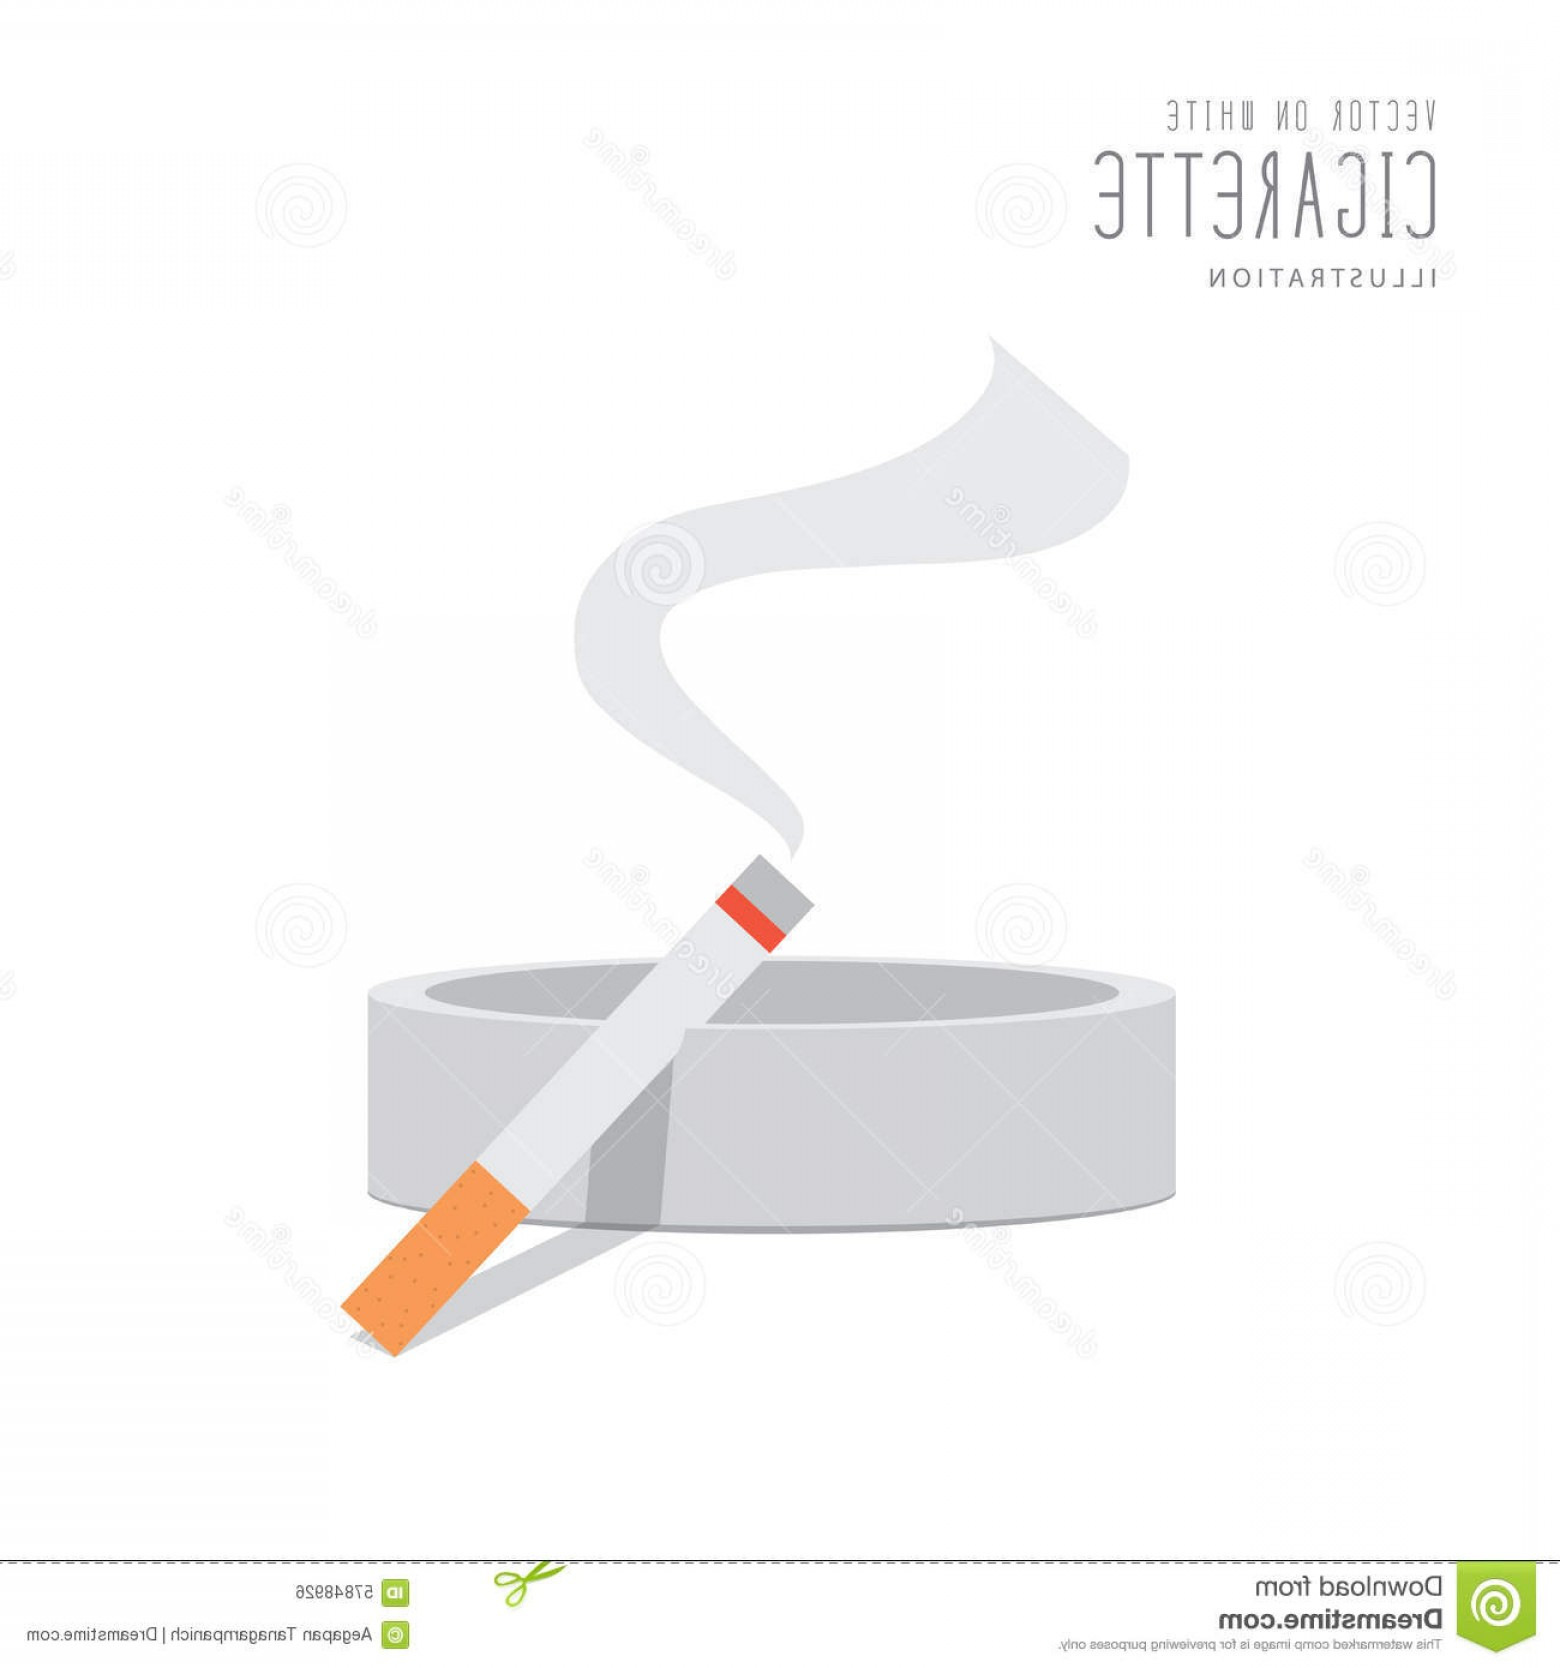 Loose- Leaf Tobacco Vector: Stock Illustration Cigarette Ashtray Flat Vector Illustration Style Image